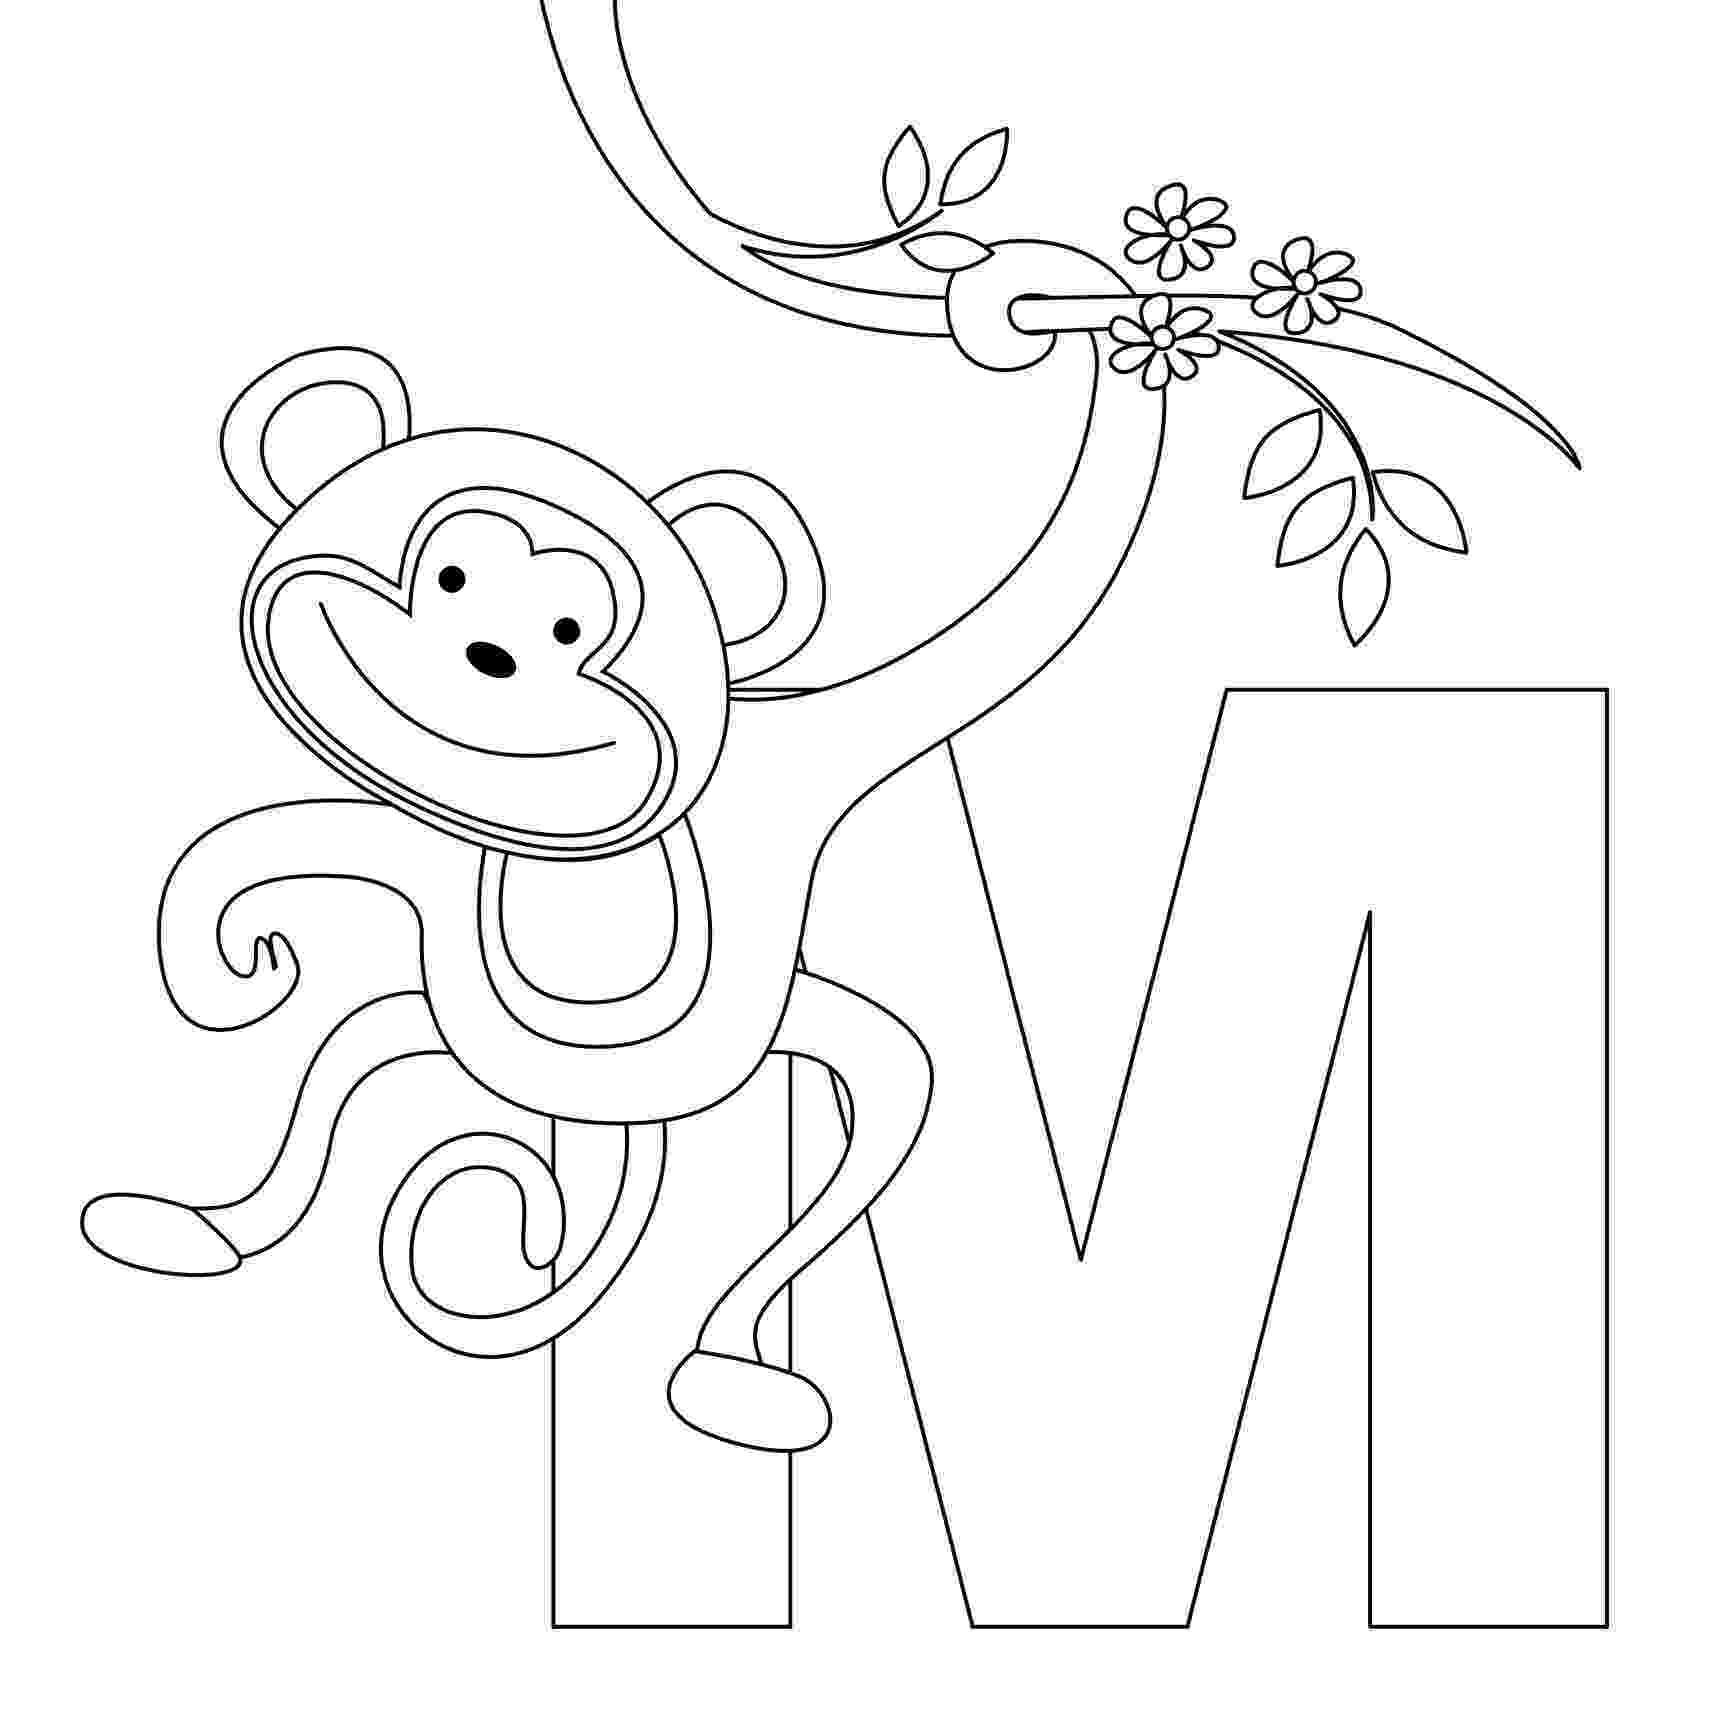 childrens colouring pages alphabet free printable alphabet coloring pages for kids best colouring childrens alphabet pages